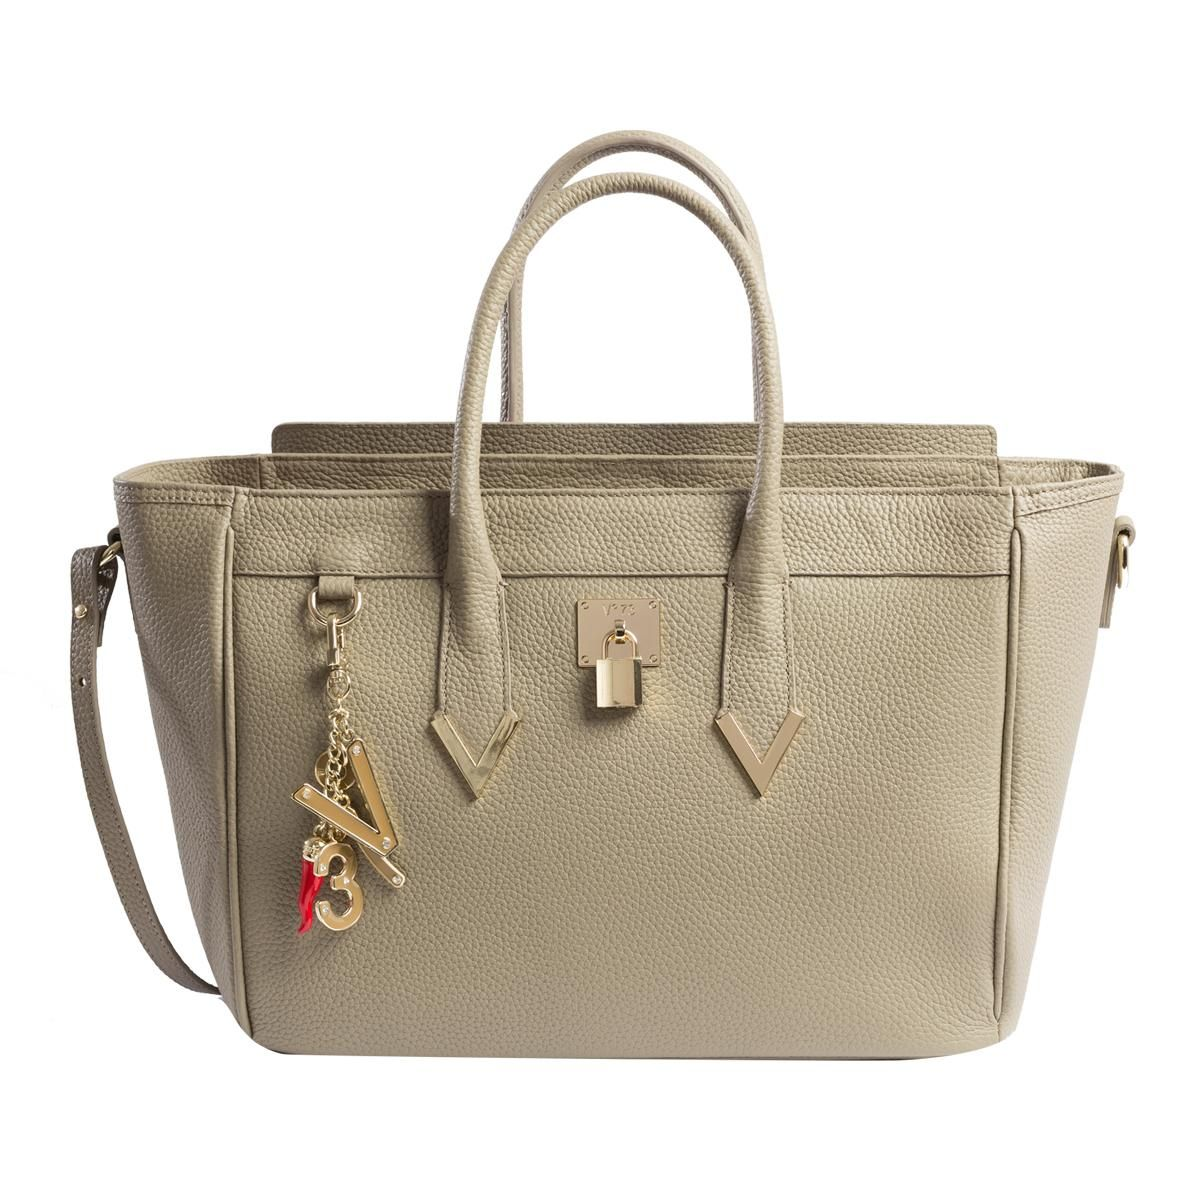 590190b29f Pin by V73 on V73 Precious Leather FW14   Pinterest   Bags, Leather ...